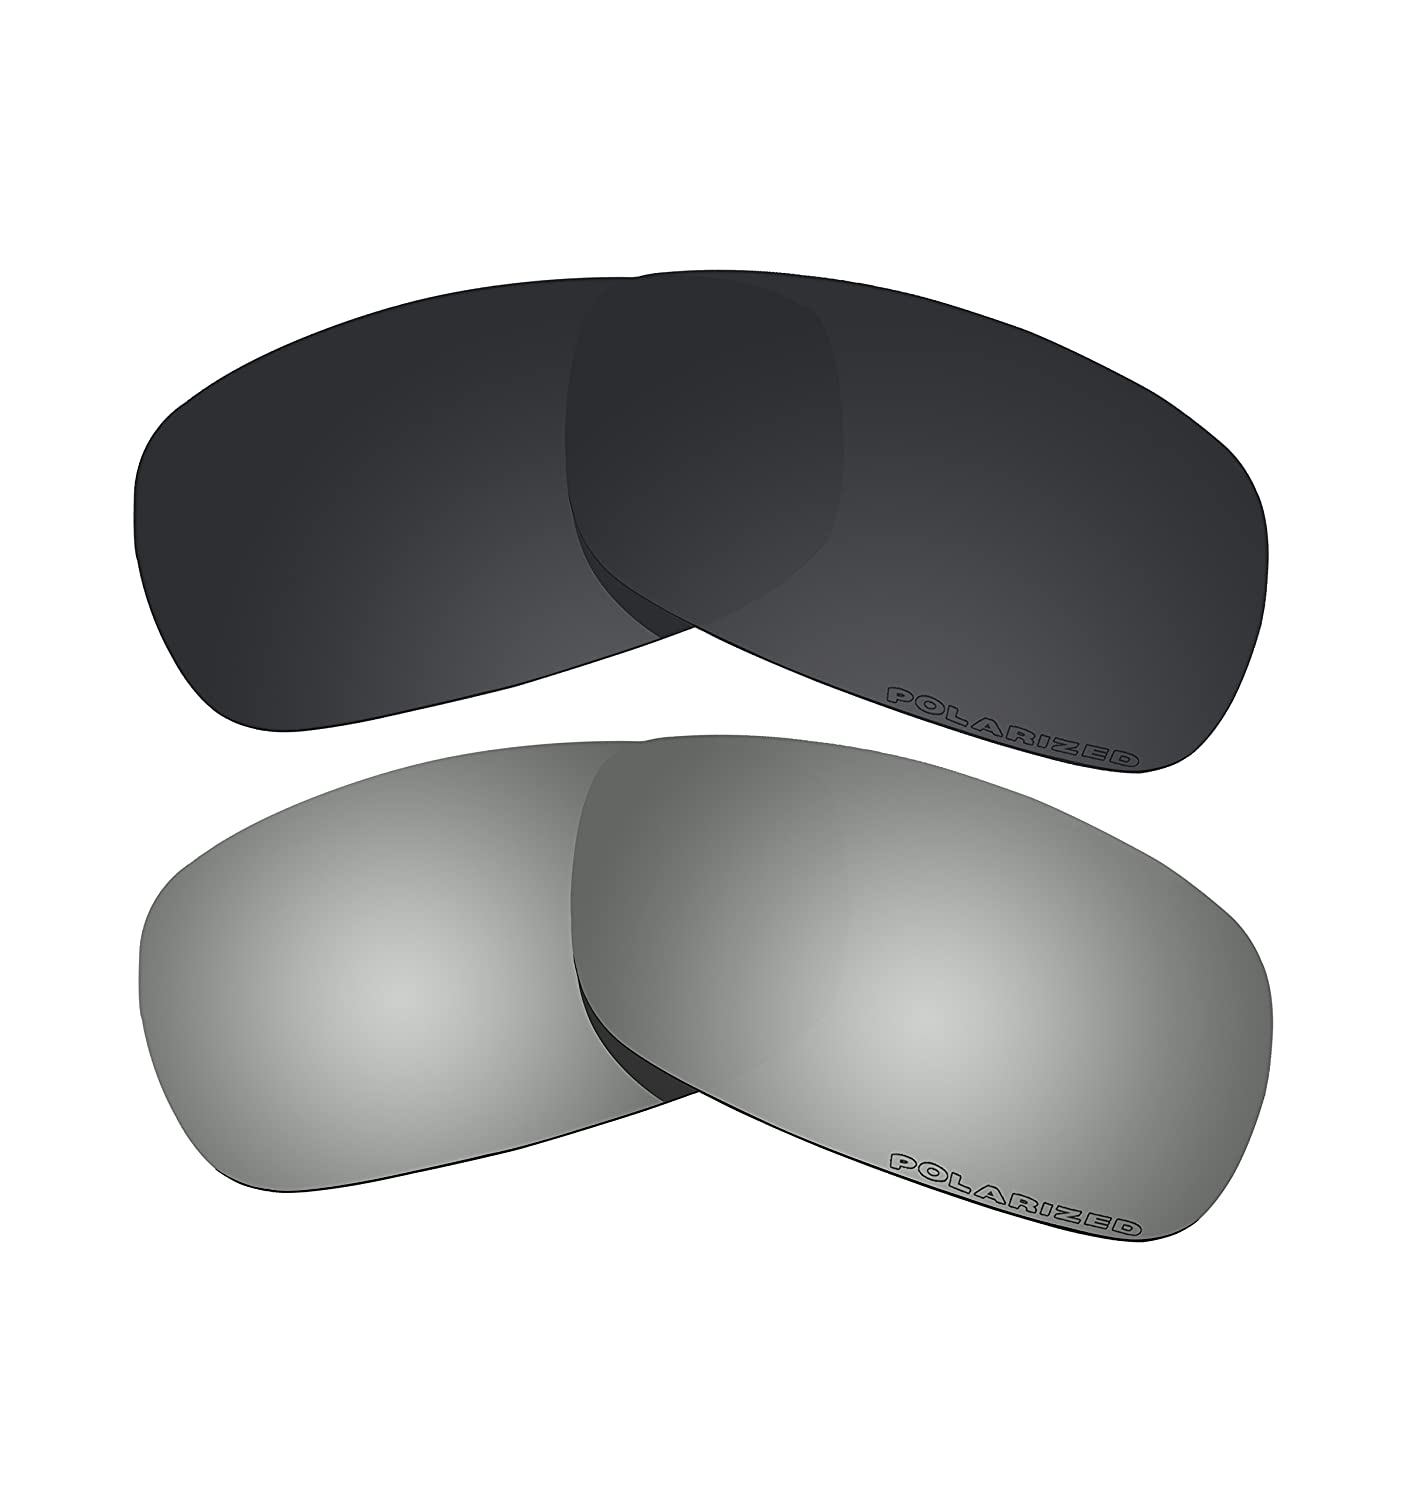 373c44034f Amazon.com   BVANQ 2 Pairs Polarized Lenses Replacement Black   Black Mirror  for Oakley Crosshair 2.0 (OO4044) Sunglasses   Sports   Outdoors